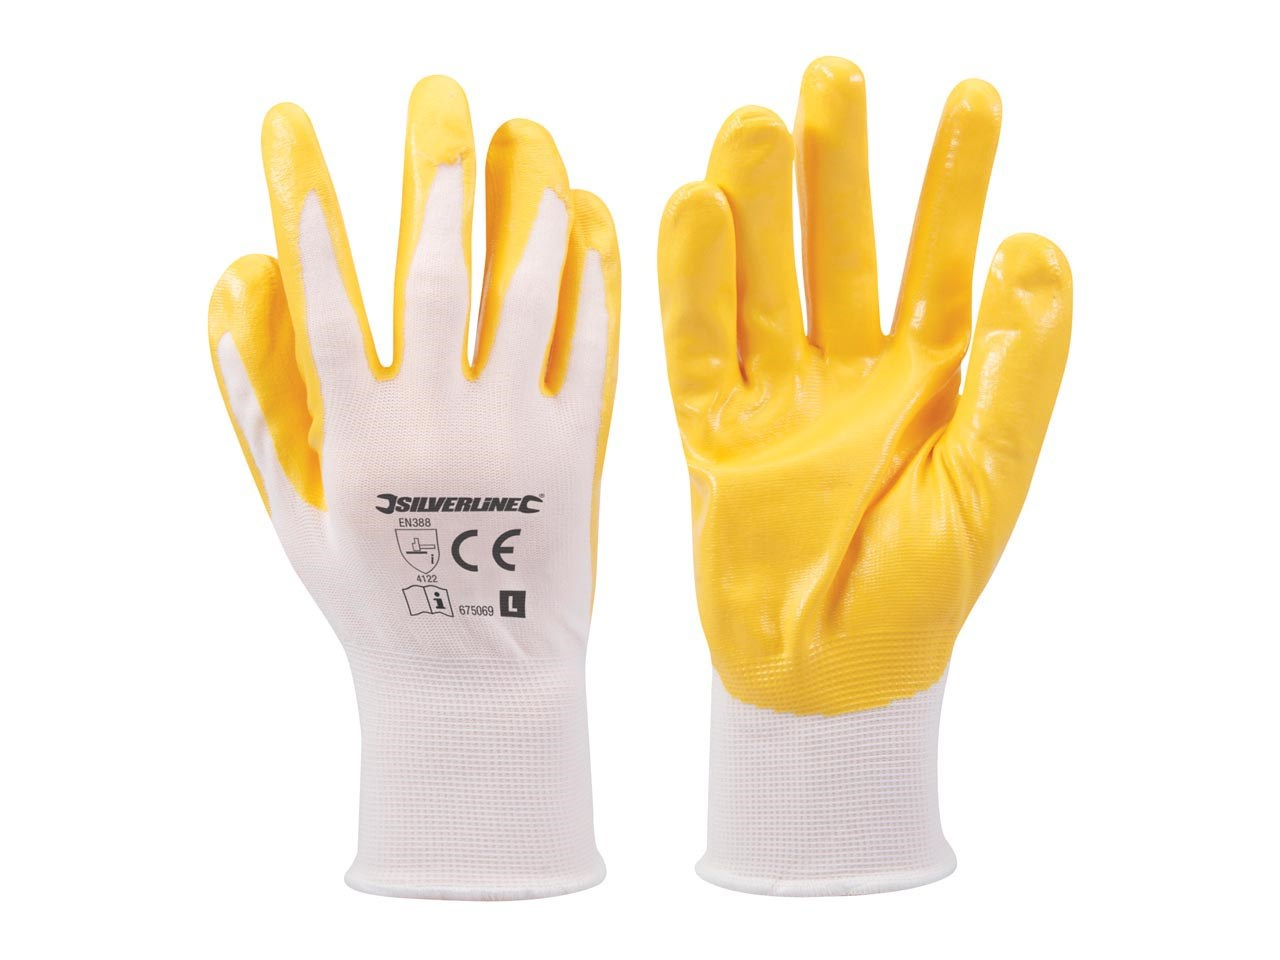 SILVERLINE NYLON COAT NITRLE GLOVES LARGE